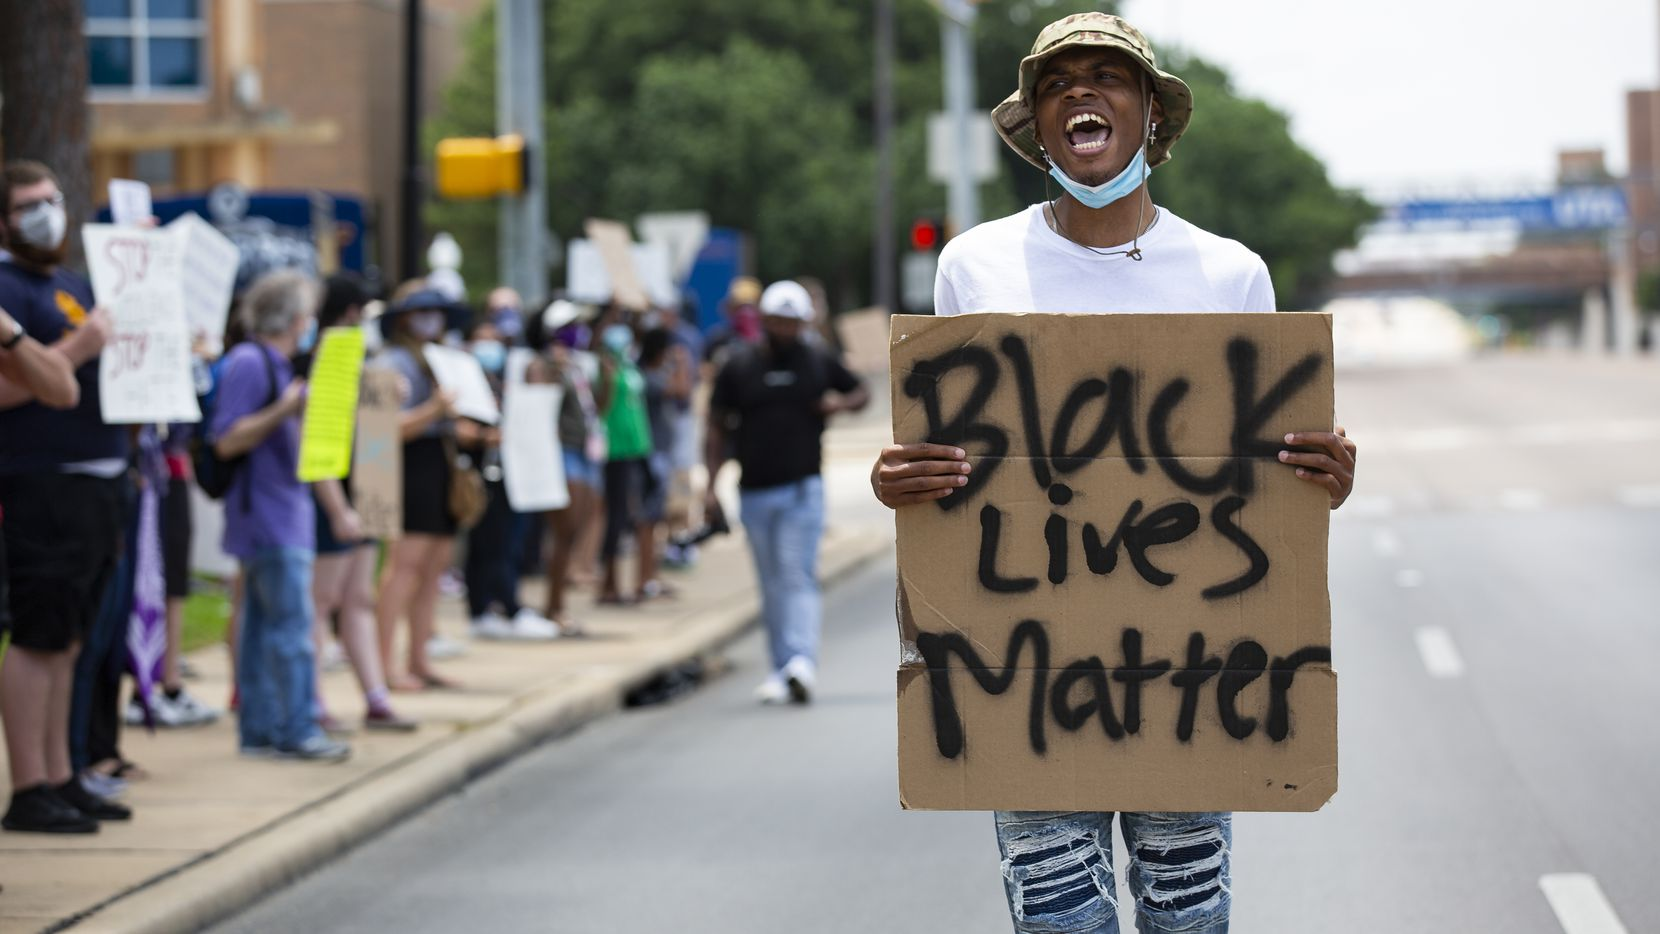 Zyshonne Harris, a senior at UT Arlington, leads the chant as protesters against police brutality line S Cooper St while participating in the School of Social Work's Protest March in Arlington on Monday, June 8, 2020.